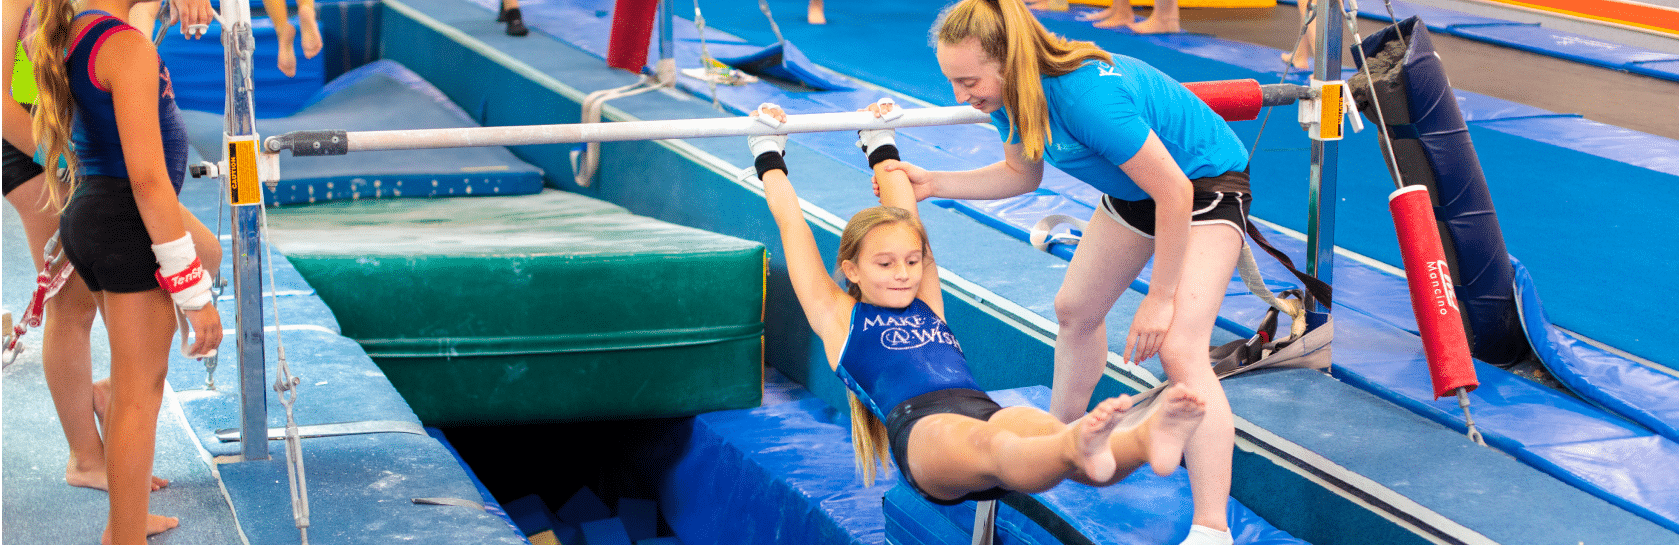 Girl swinging on bar with coach helping